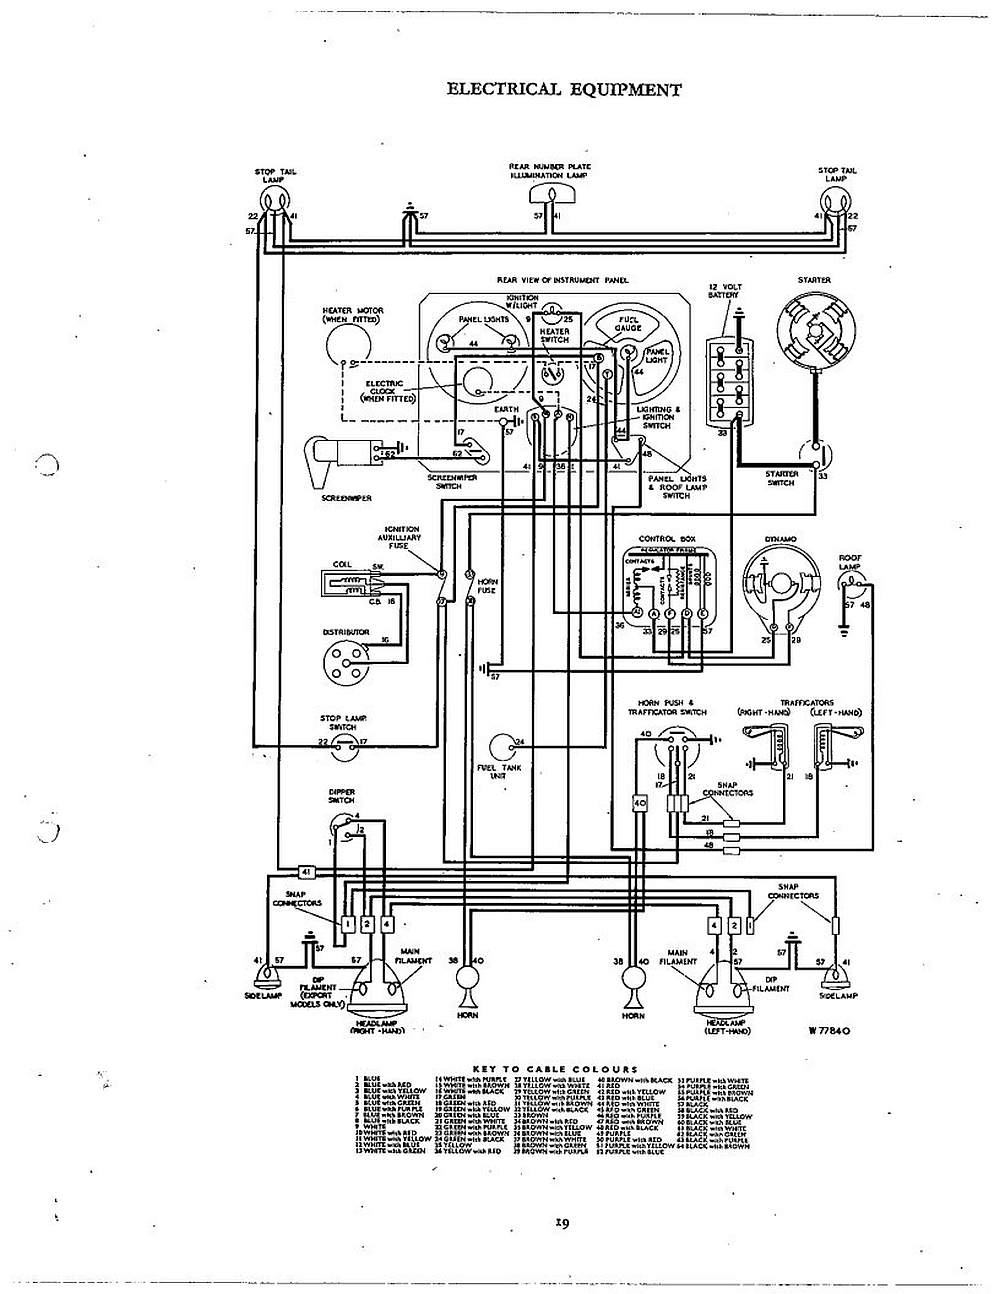 1969 triumph tr6 wiring diagram schematic schematics wiring diagrams u2022 rh seniorlivinguniversity co